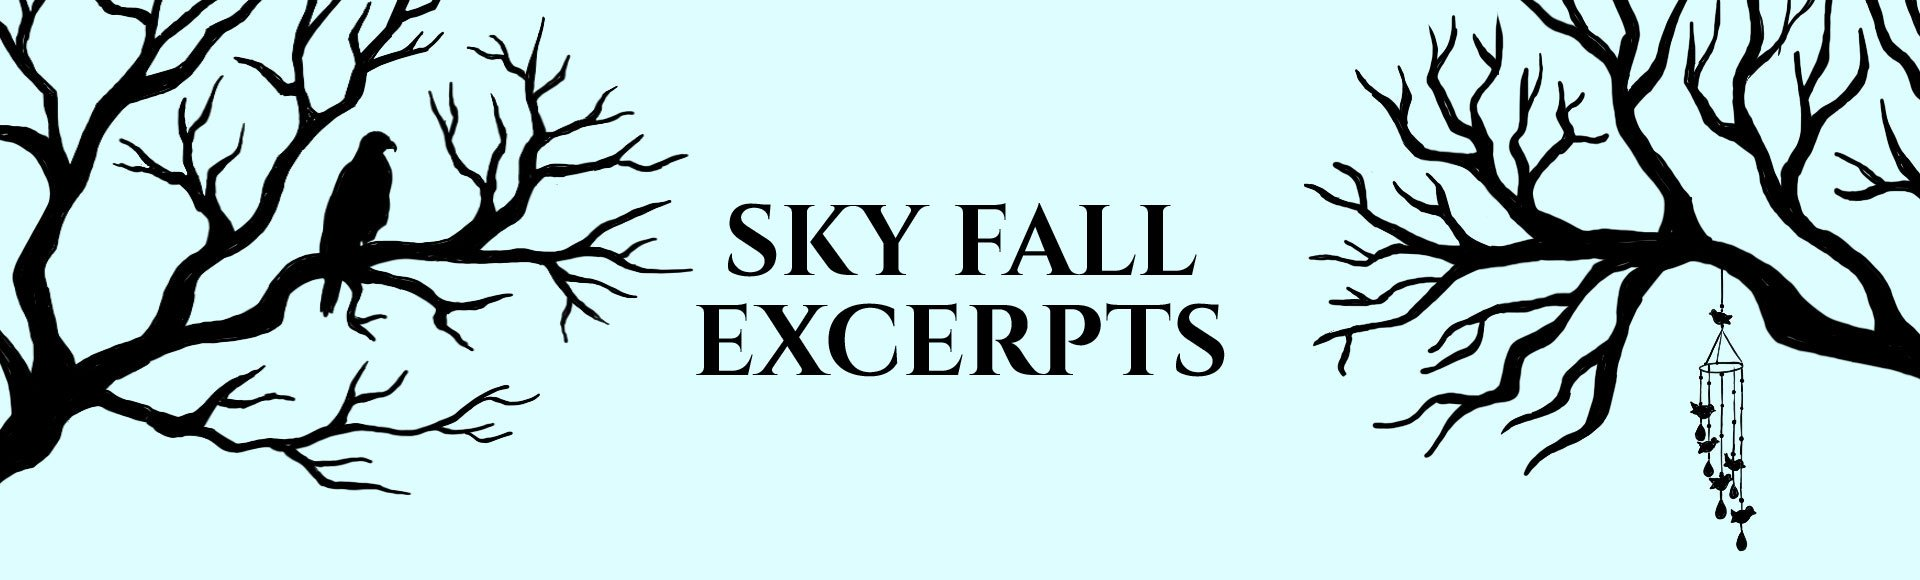 Sky Fall Excerpts